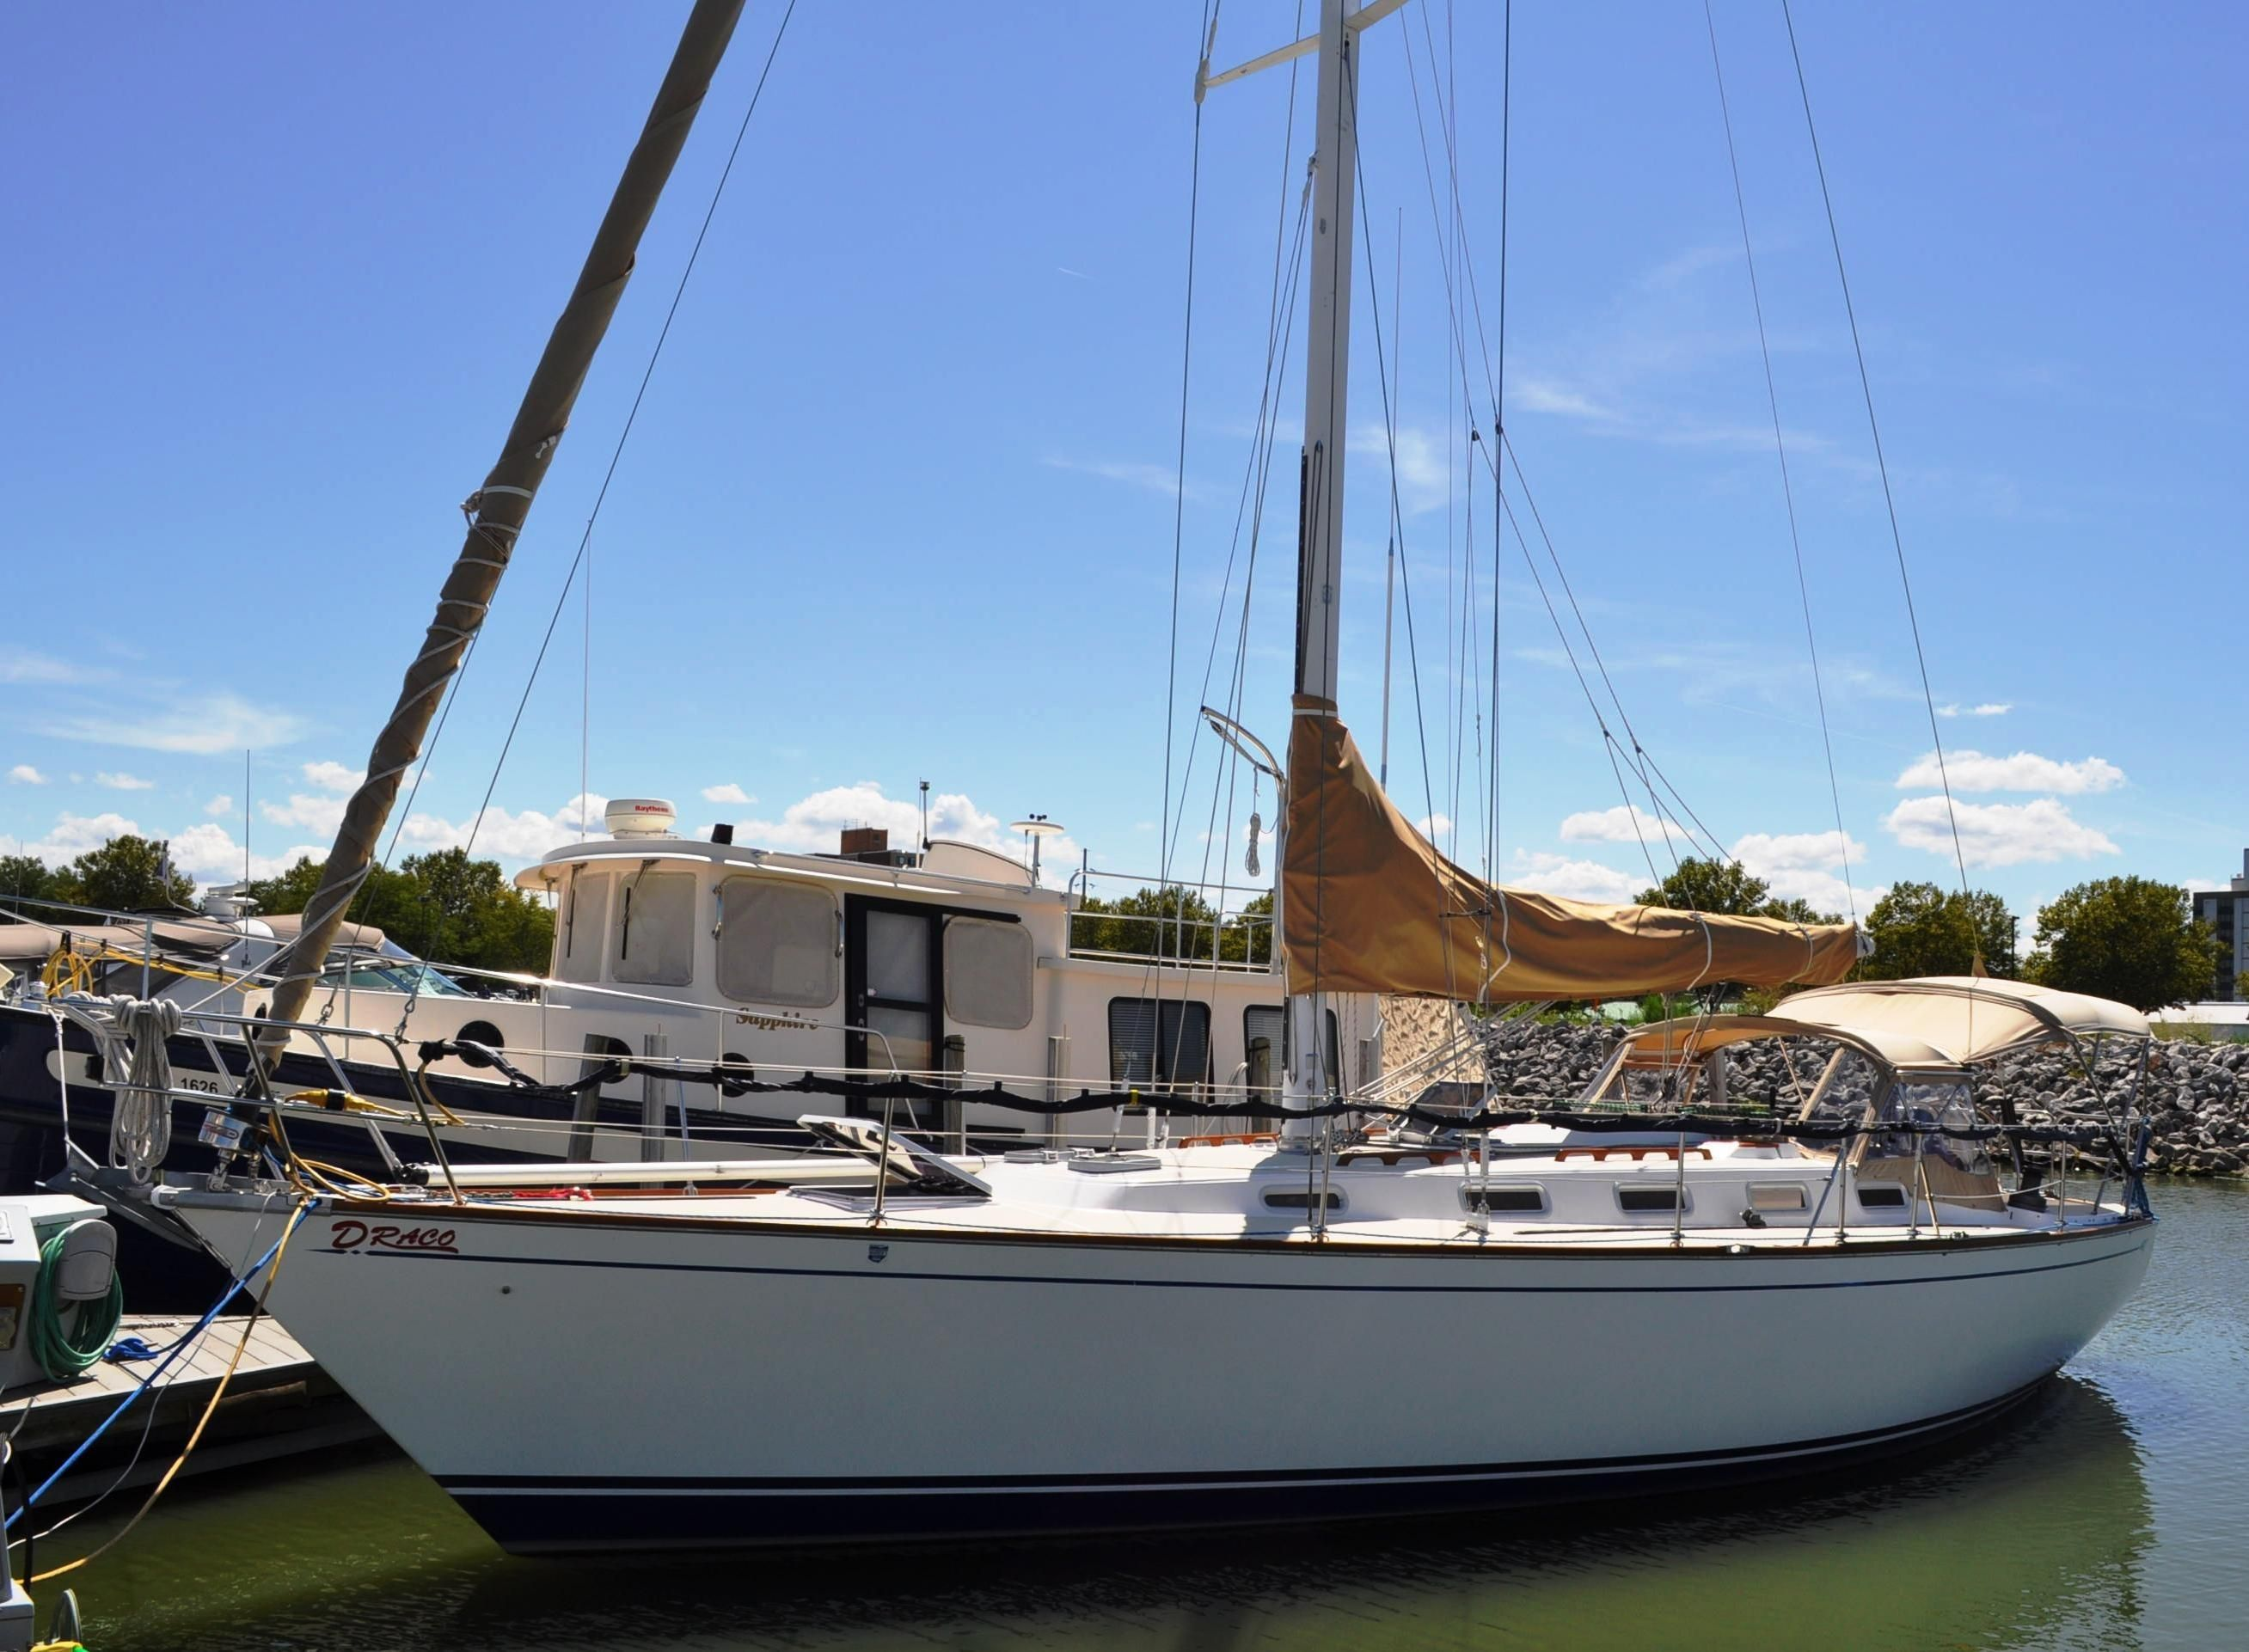 1986 tartan 40 sail boat for sale for Sailboat outboard motor size calculator